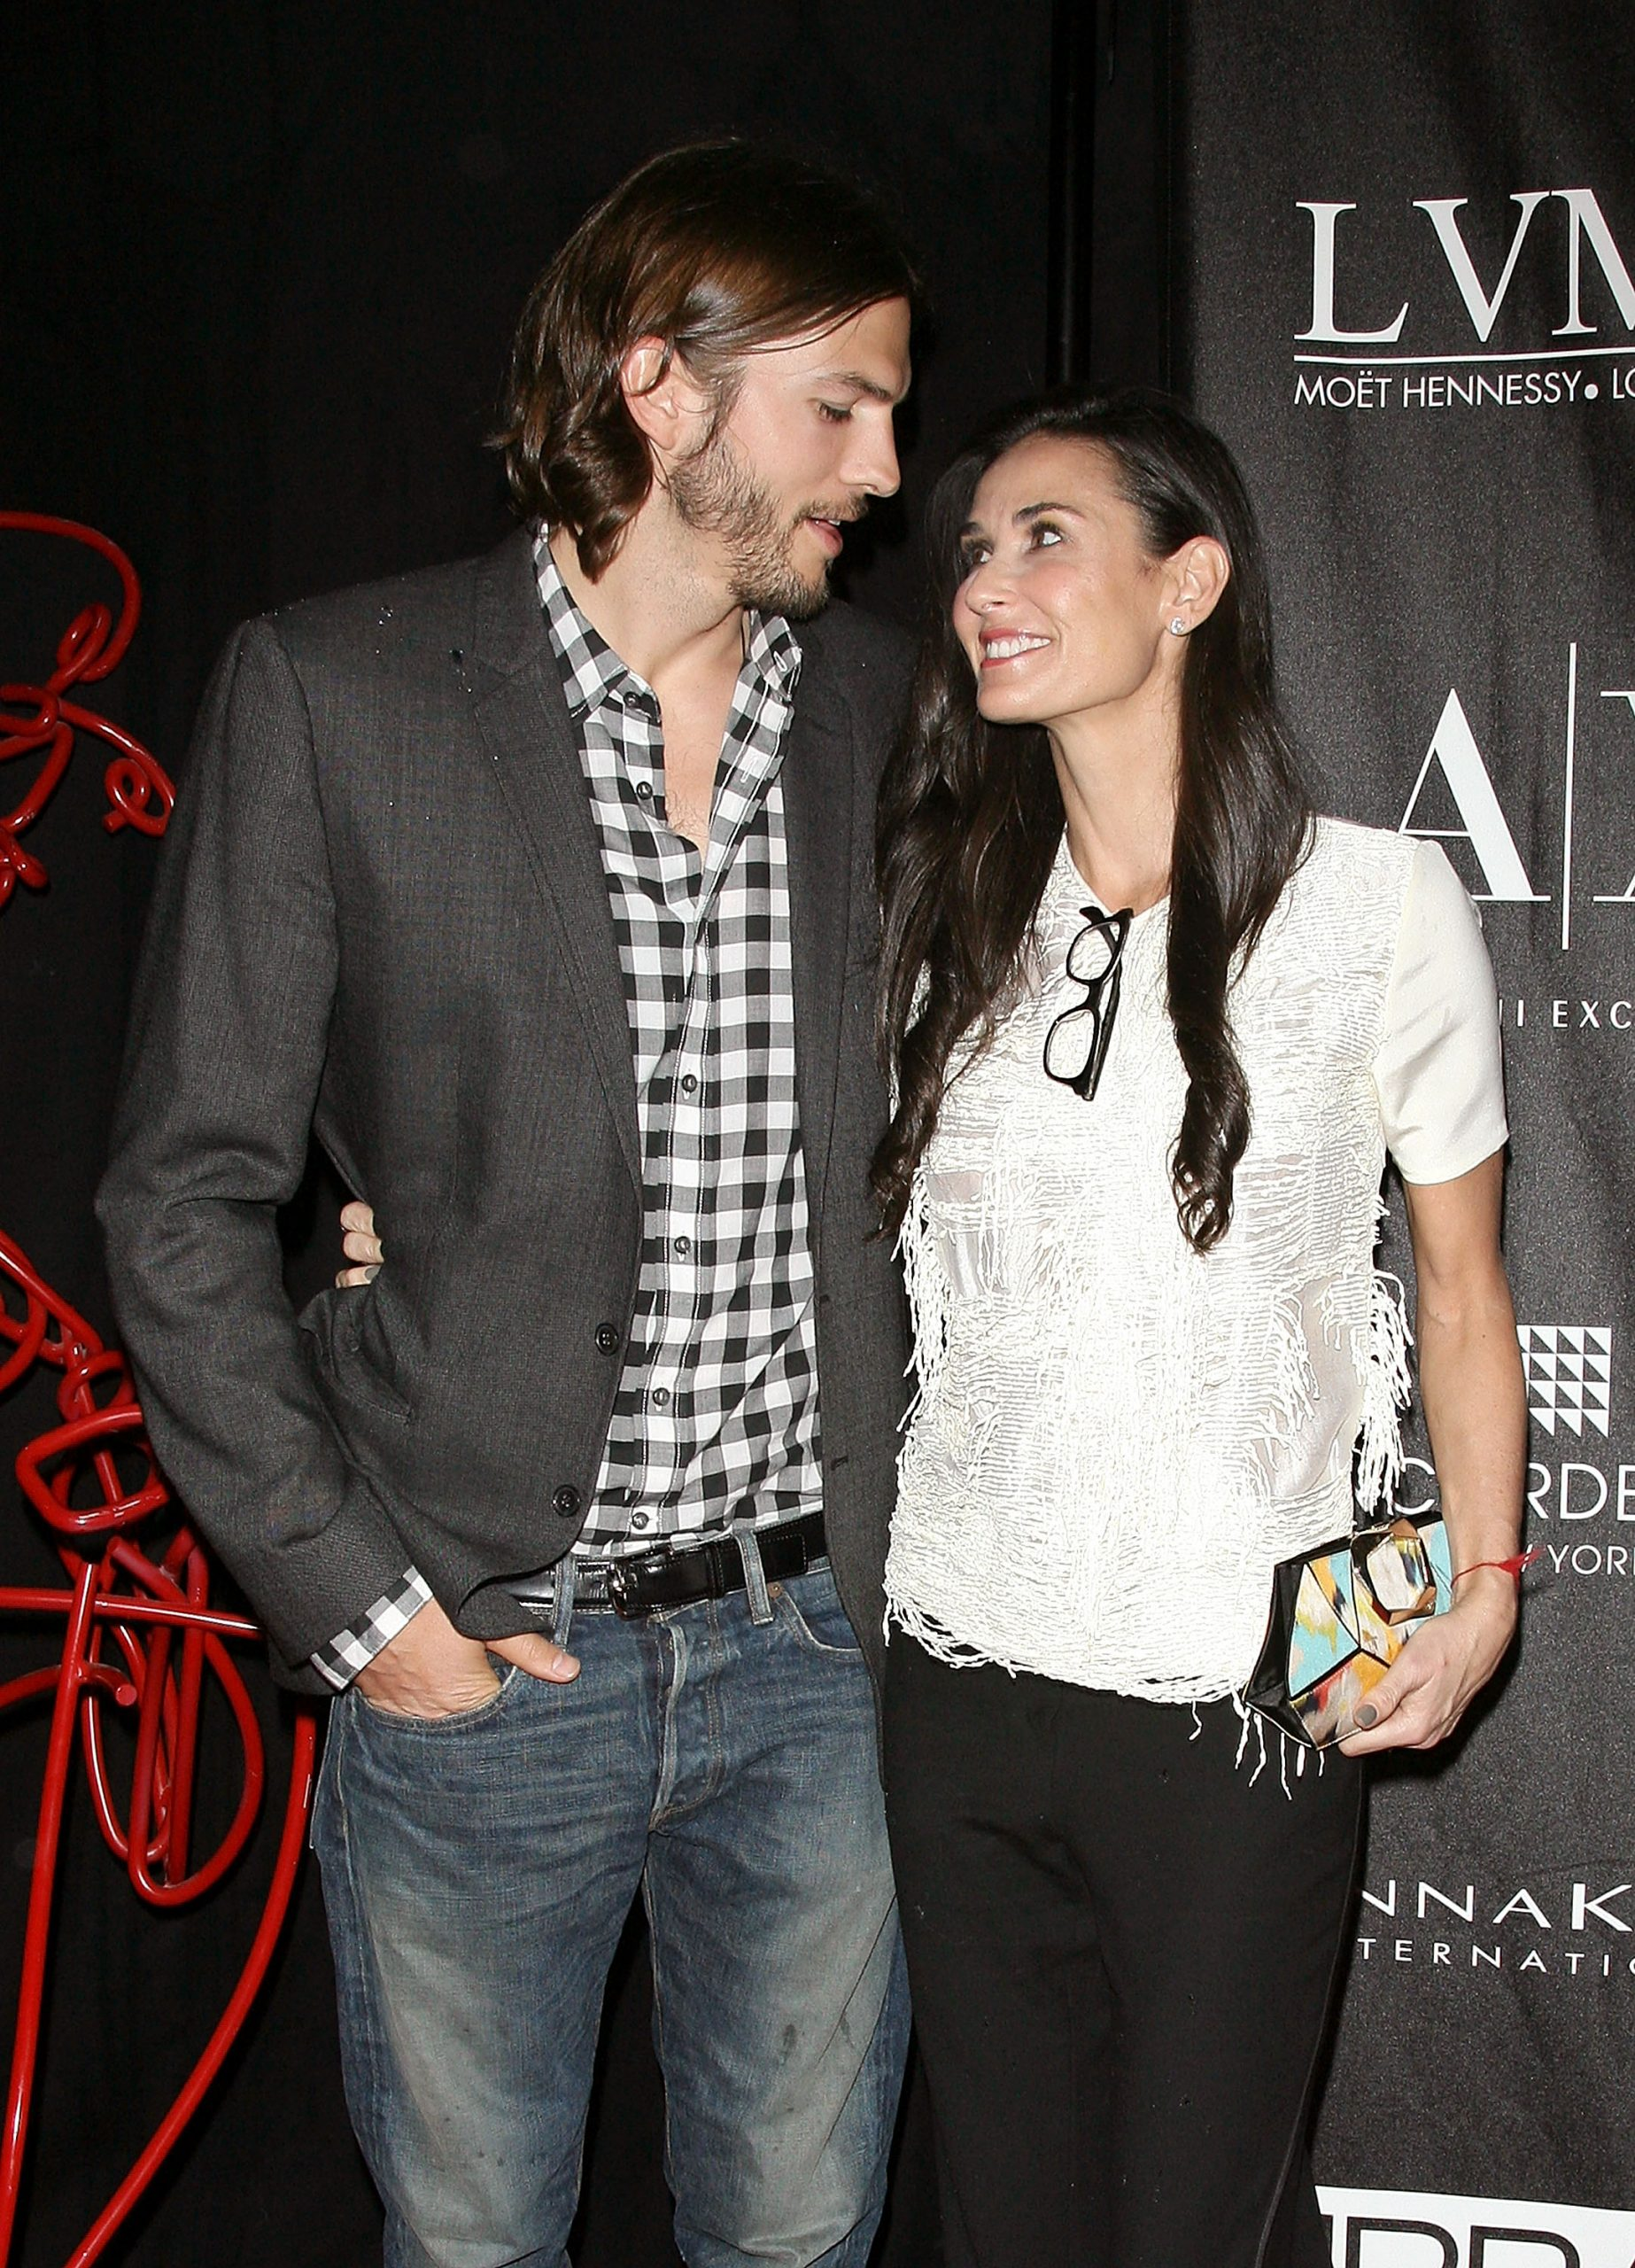 Actors Ashton Kutcher and Demi Moore attend The Urban Zen Stephan Weiss Apple Awards at Urban Zen on June 9, 2011 in New York City.